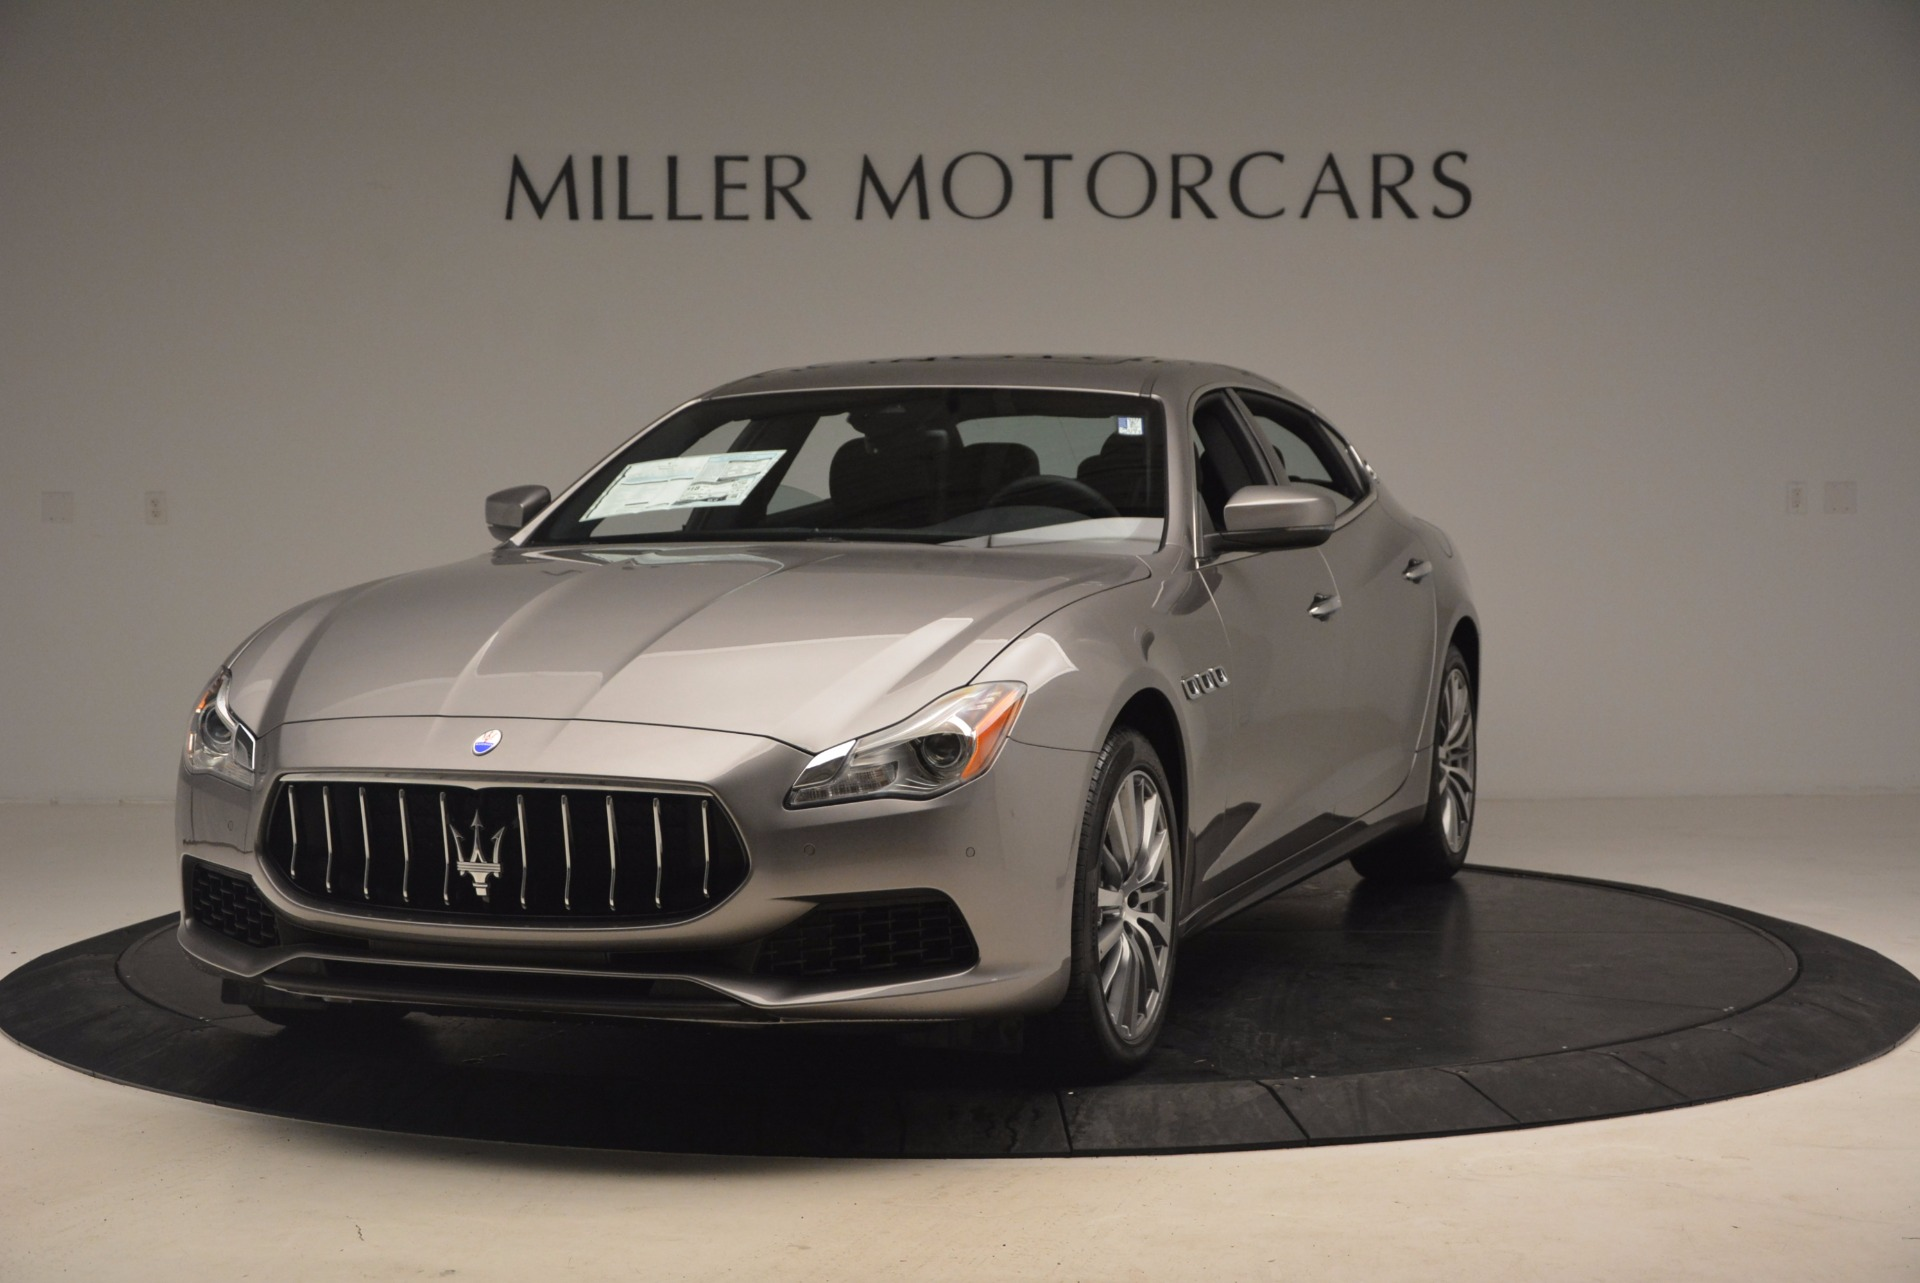 New 2017 Maserati Quattroporte SQ4 for sale Sold at Alfa Romeo of Westport in Westport CT 06880 1